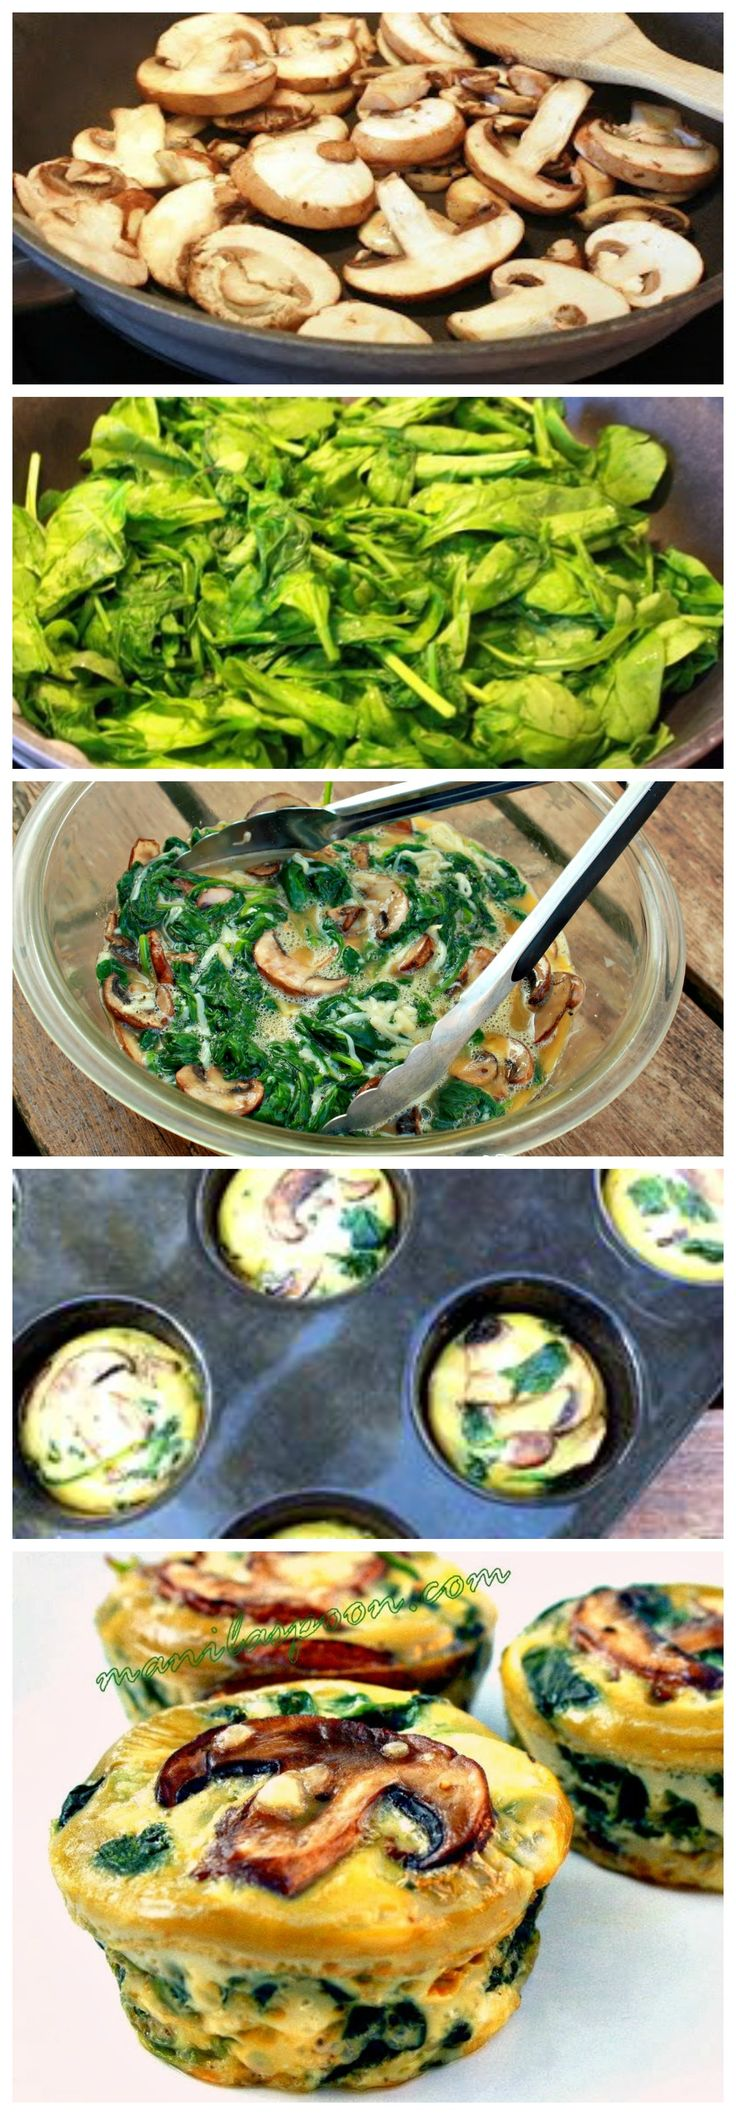 Perfect for a quick, yummy and healthy breakfast on the go - SPINACH QUICHE CUPS - Low-carb and gluten-free!